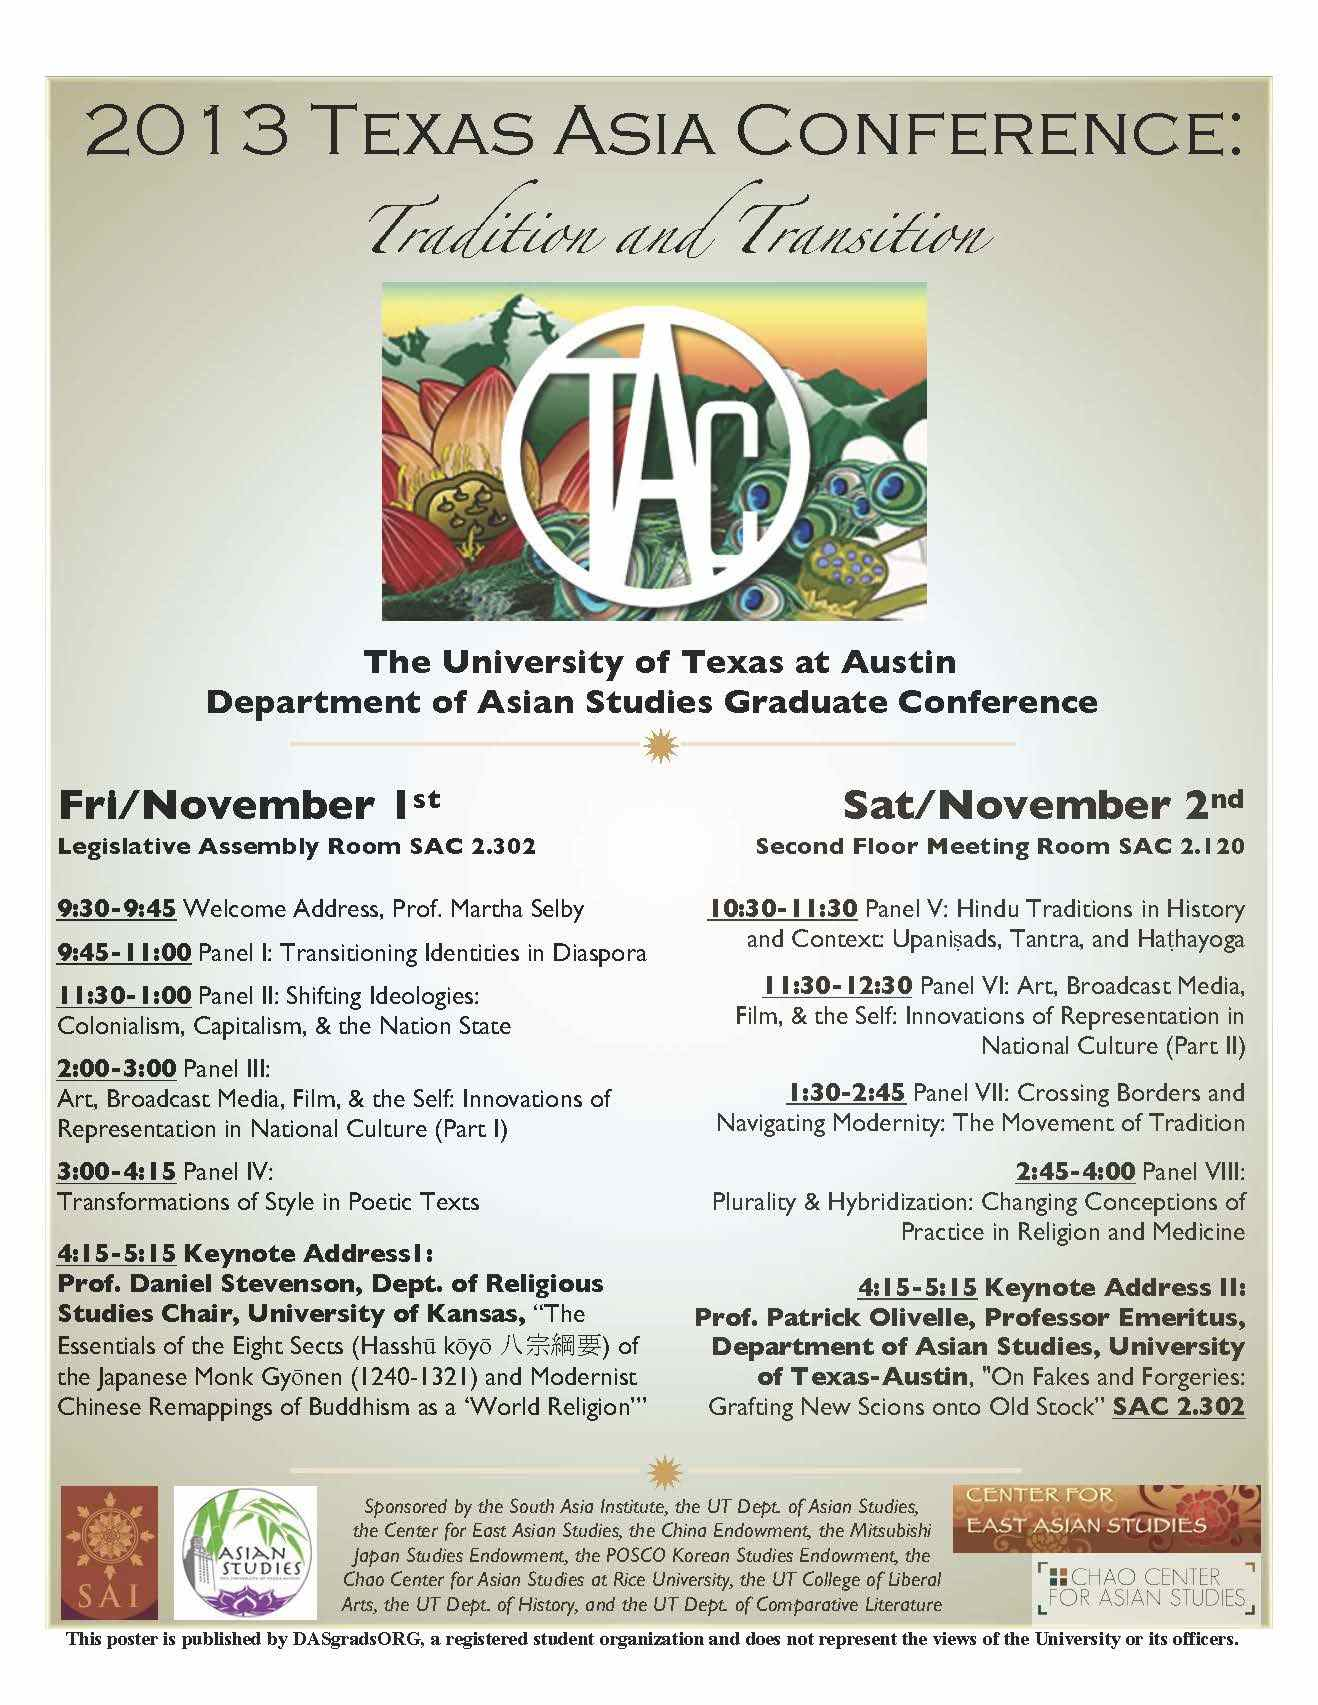 Texas Asia Conference 2013: November 1st - 2nd